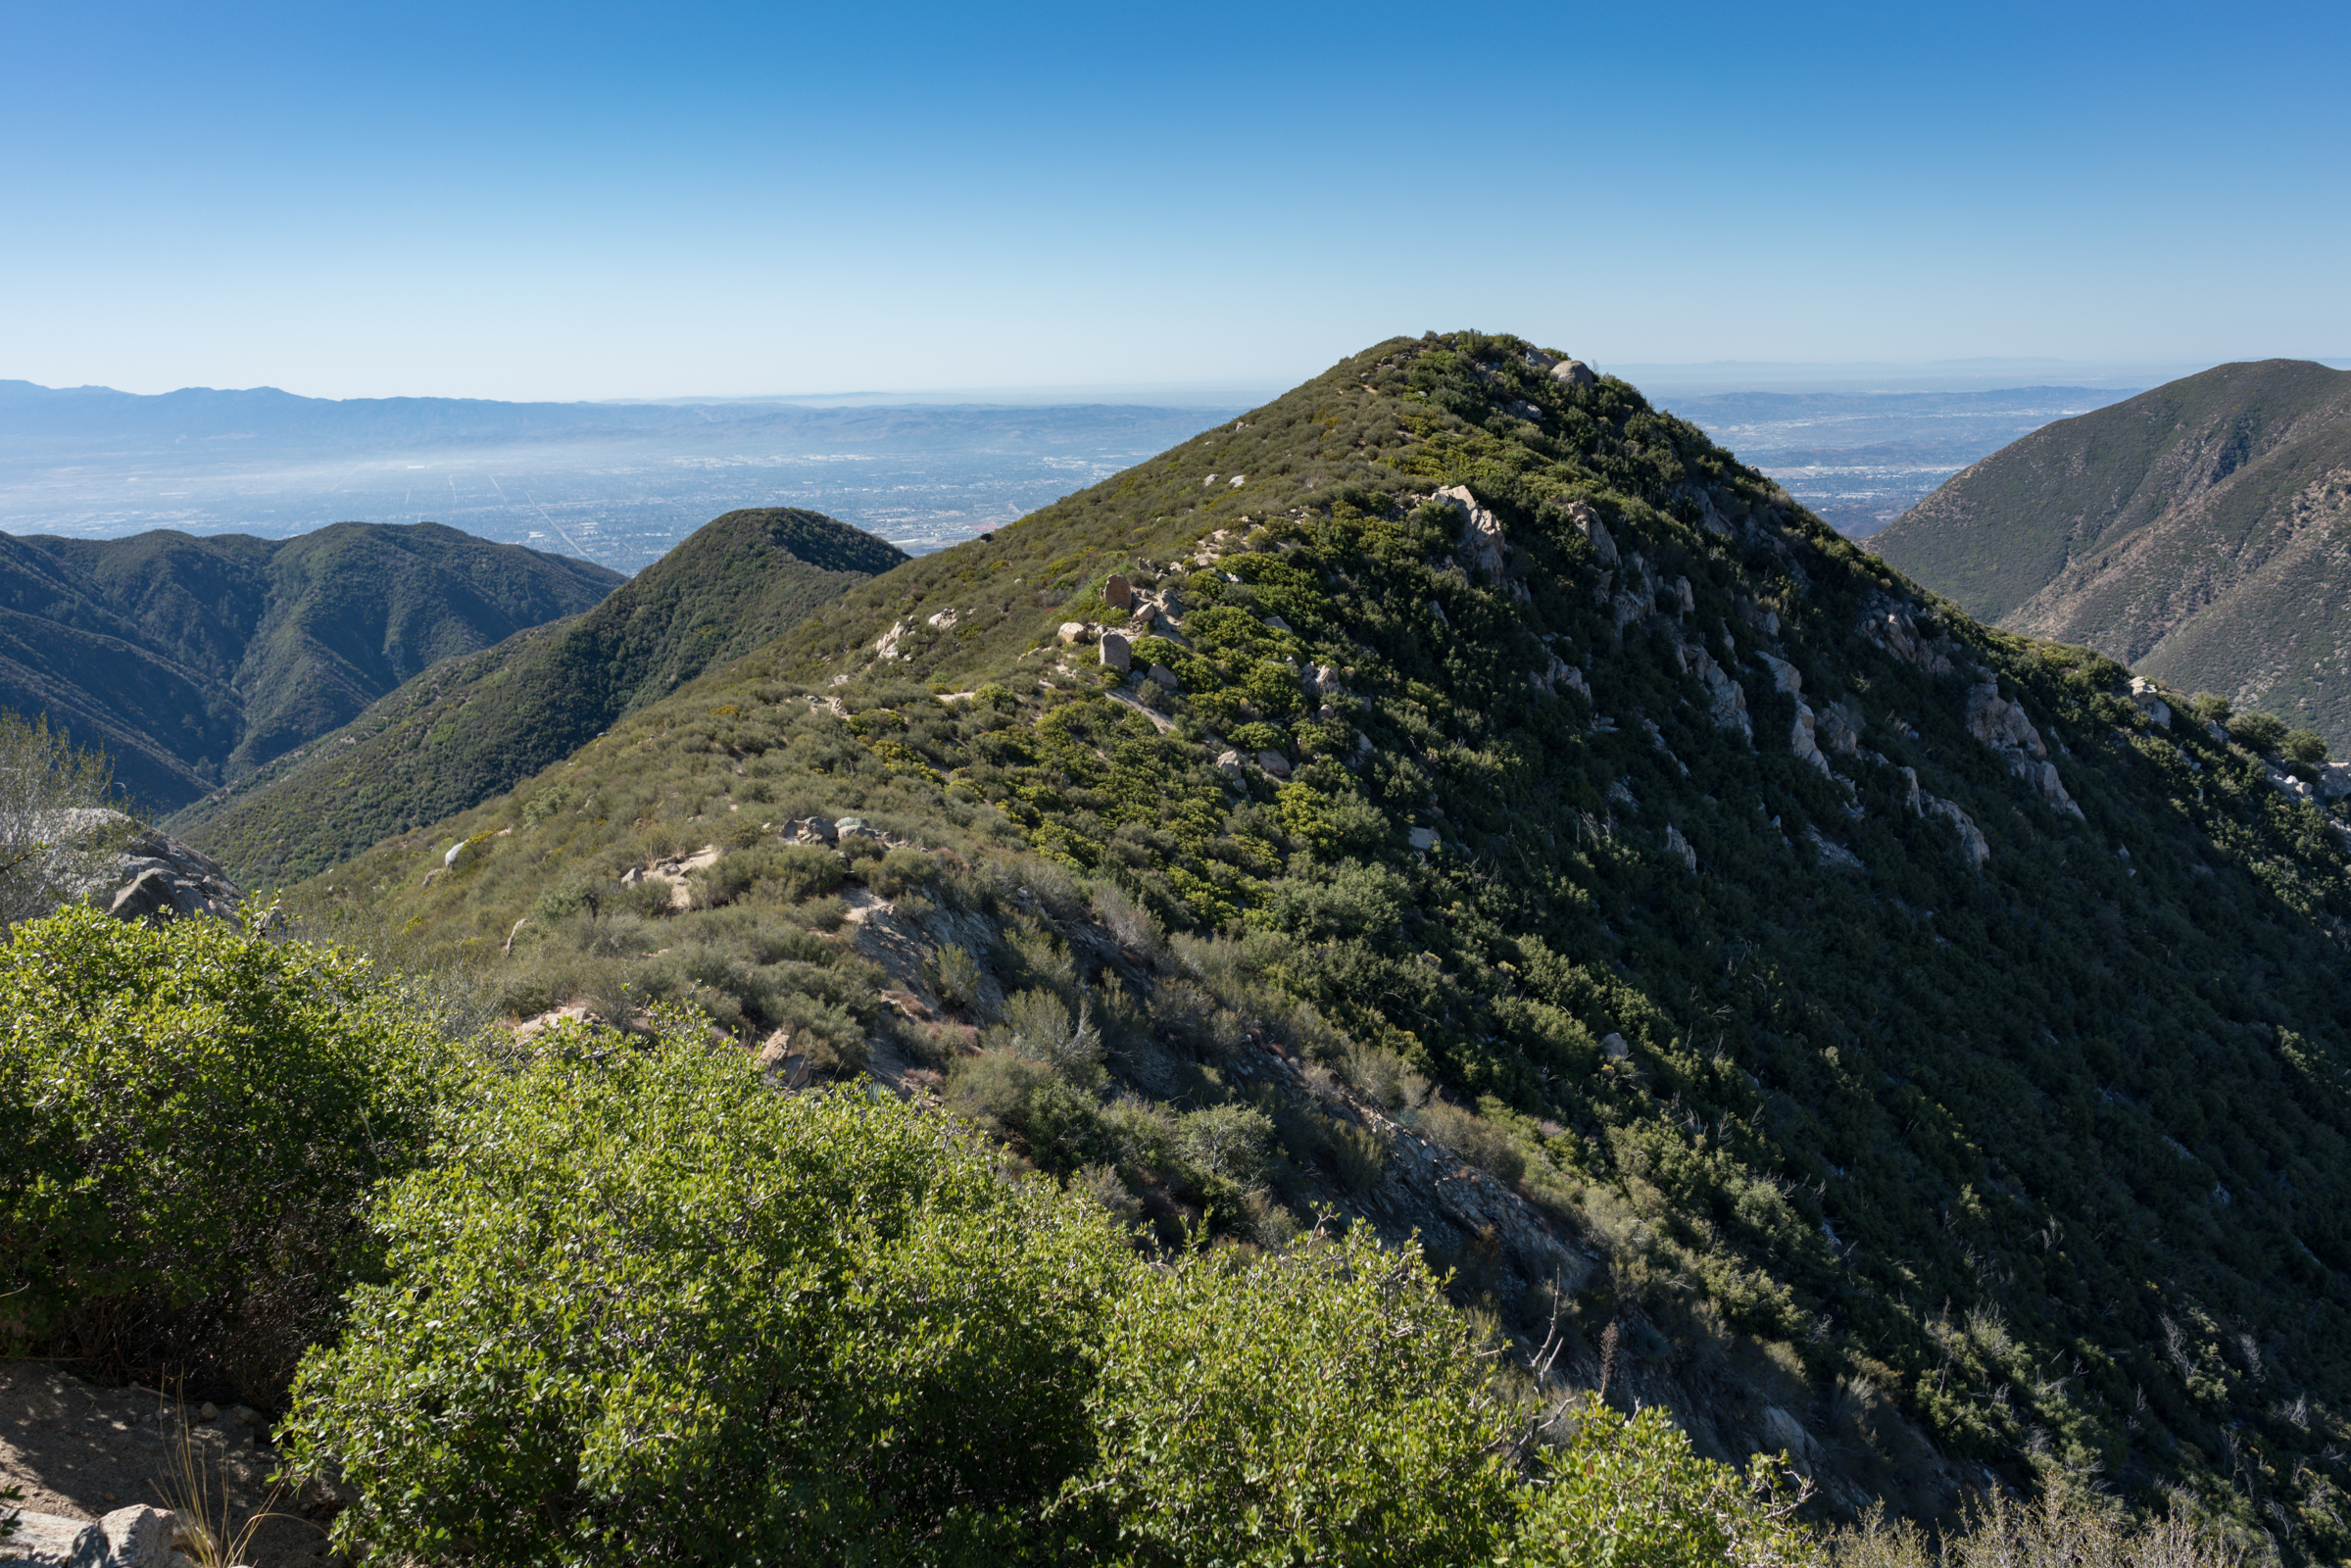 Hiking Stoddard Peak via Barrett Stoddard Road - Mt. Baldy, CA